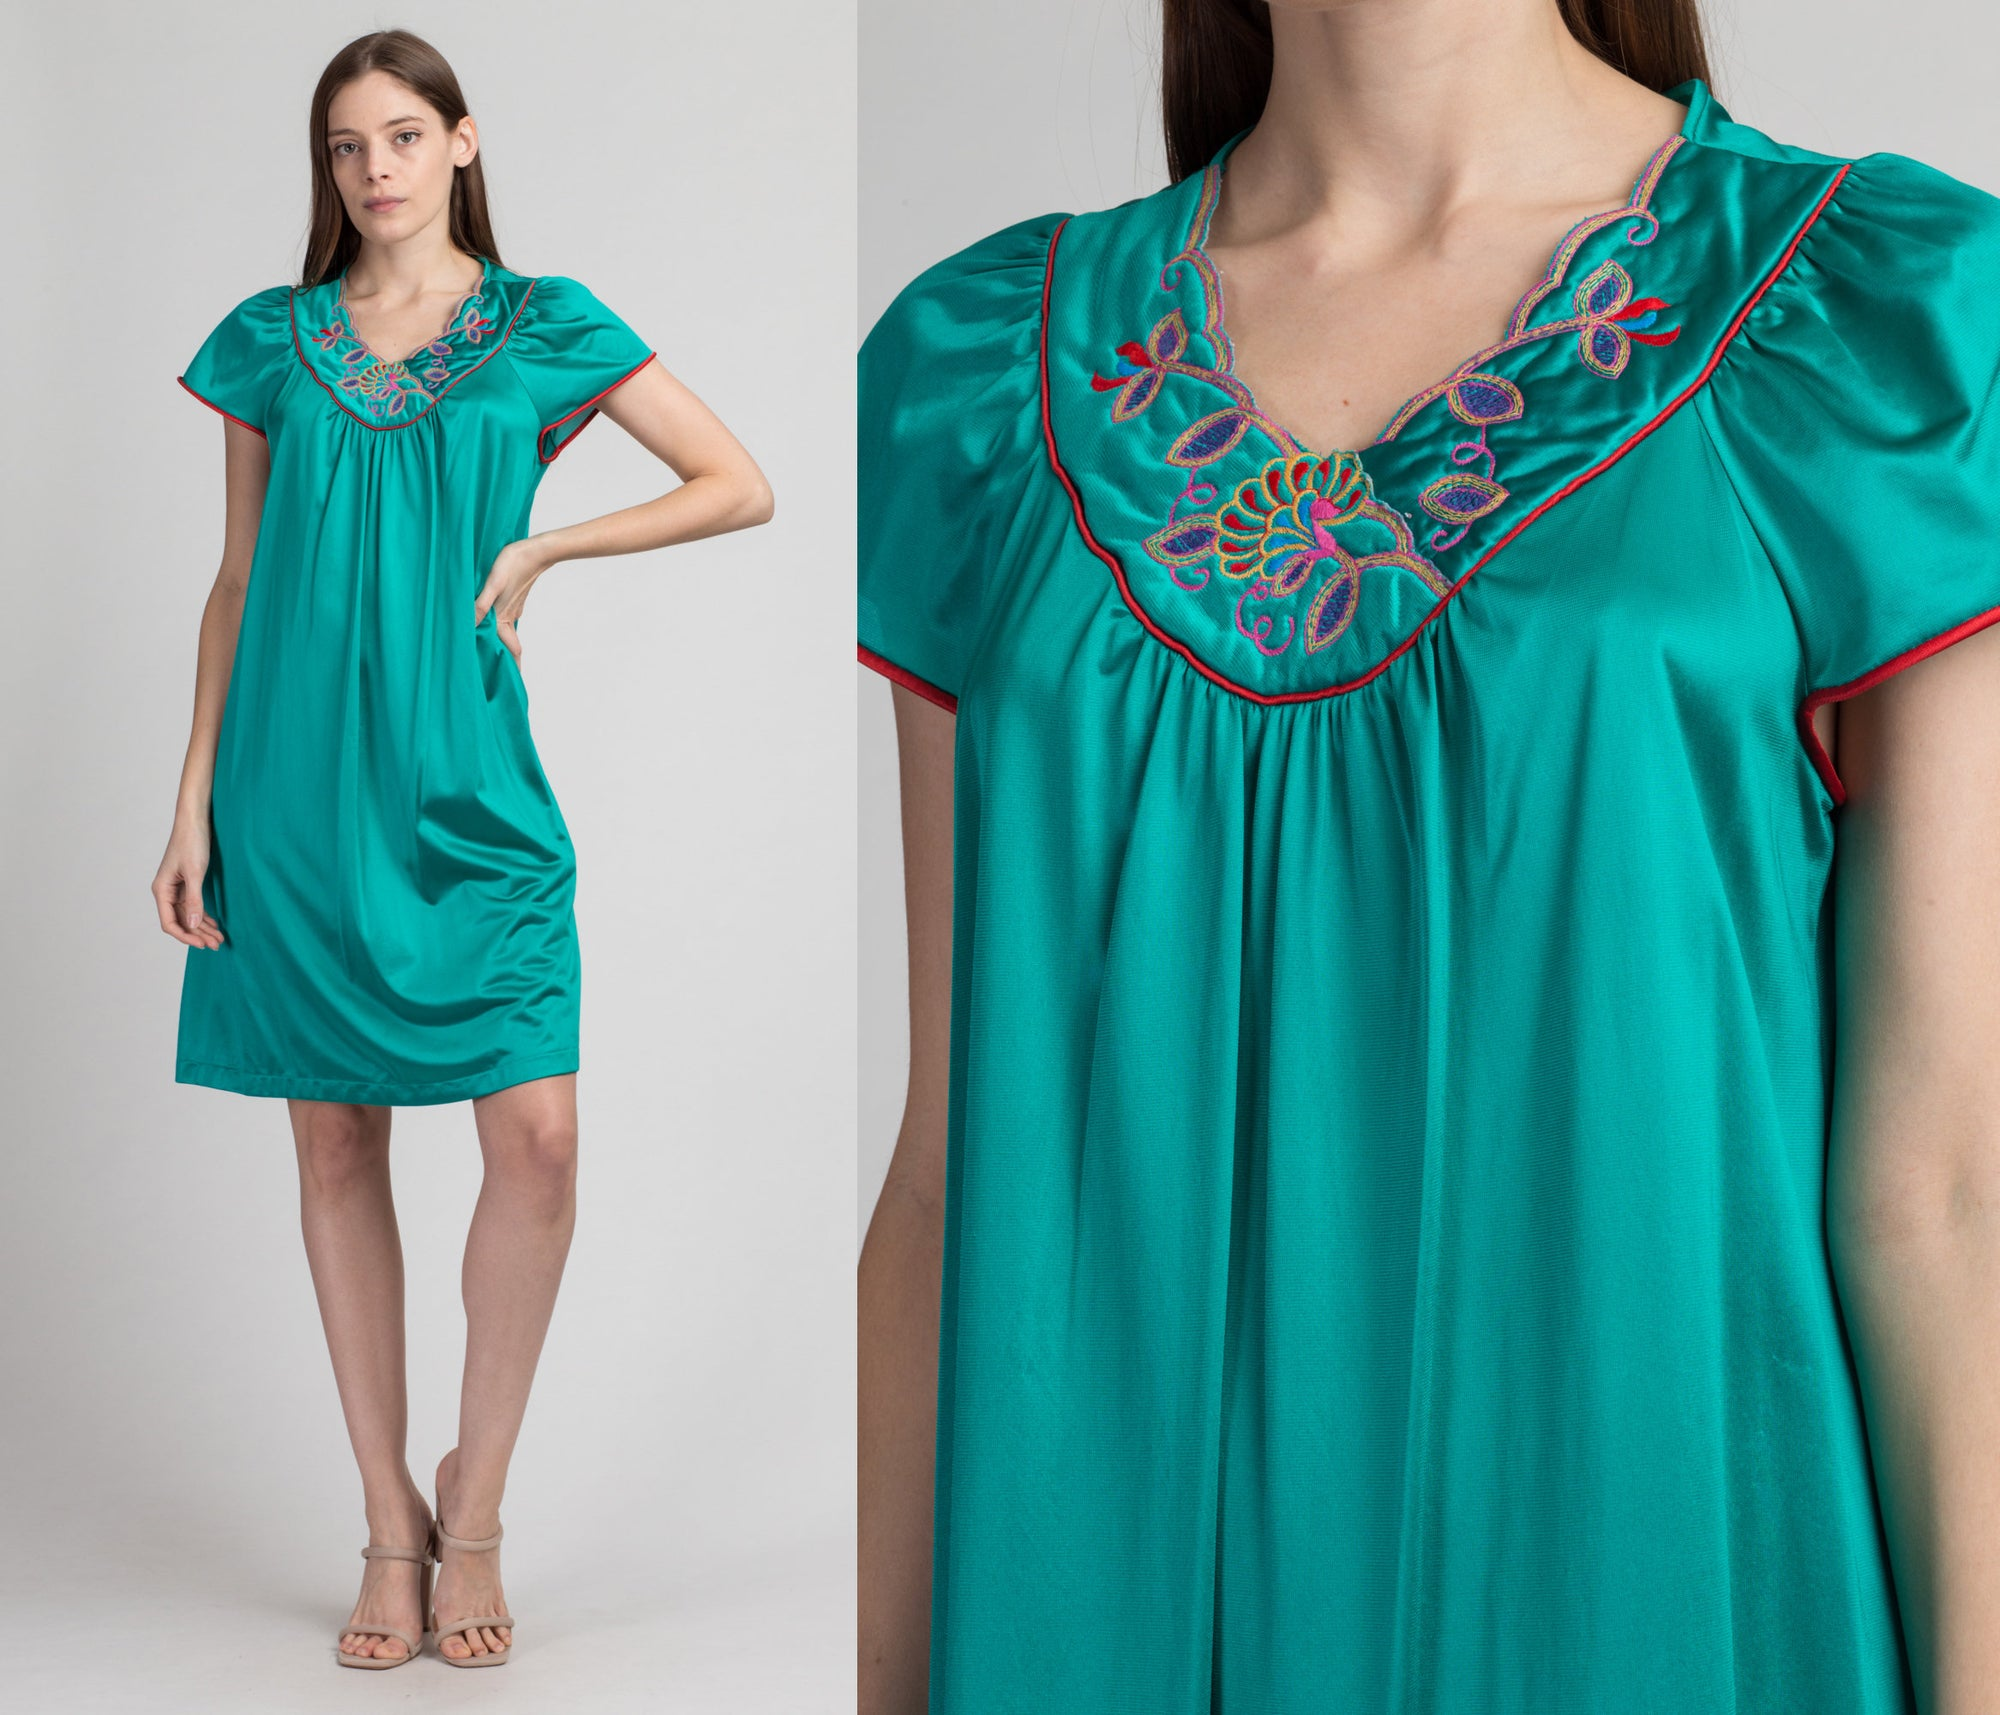 Vintage Vanity Fair Slip Nightdress - Medium | 70s 80s Teal Green Mini Nightie